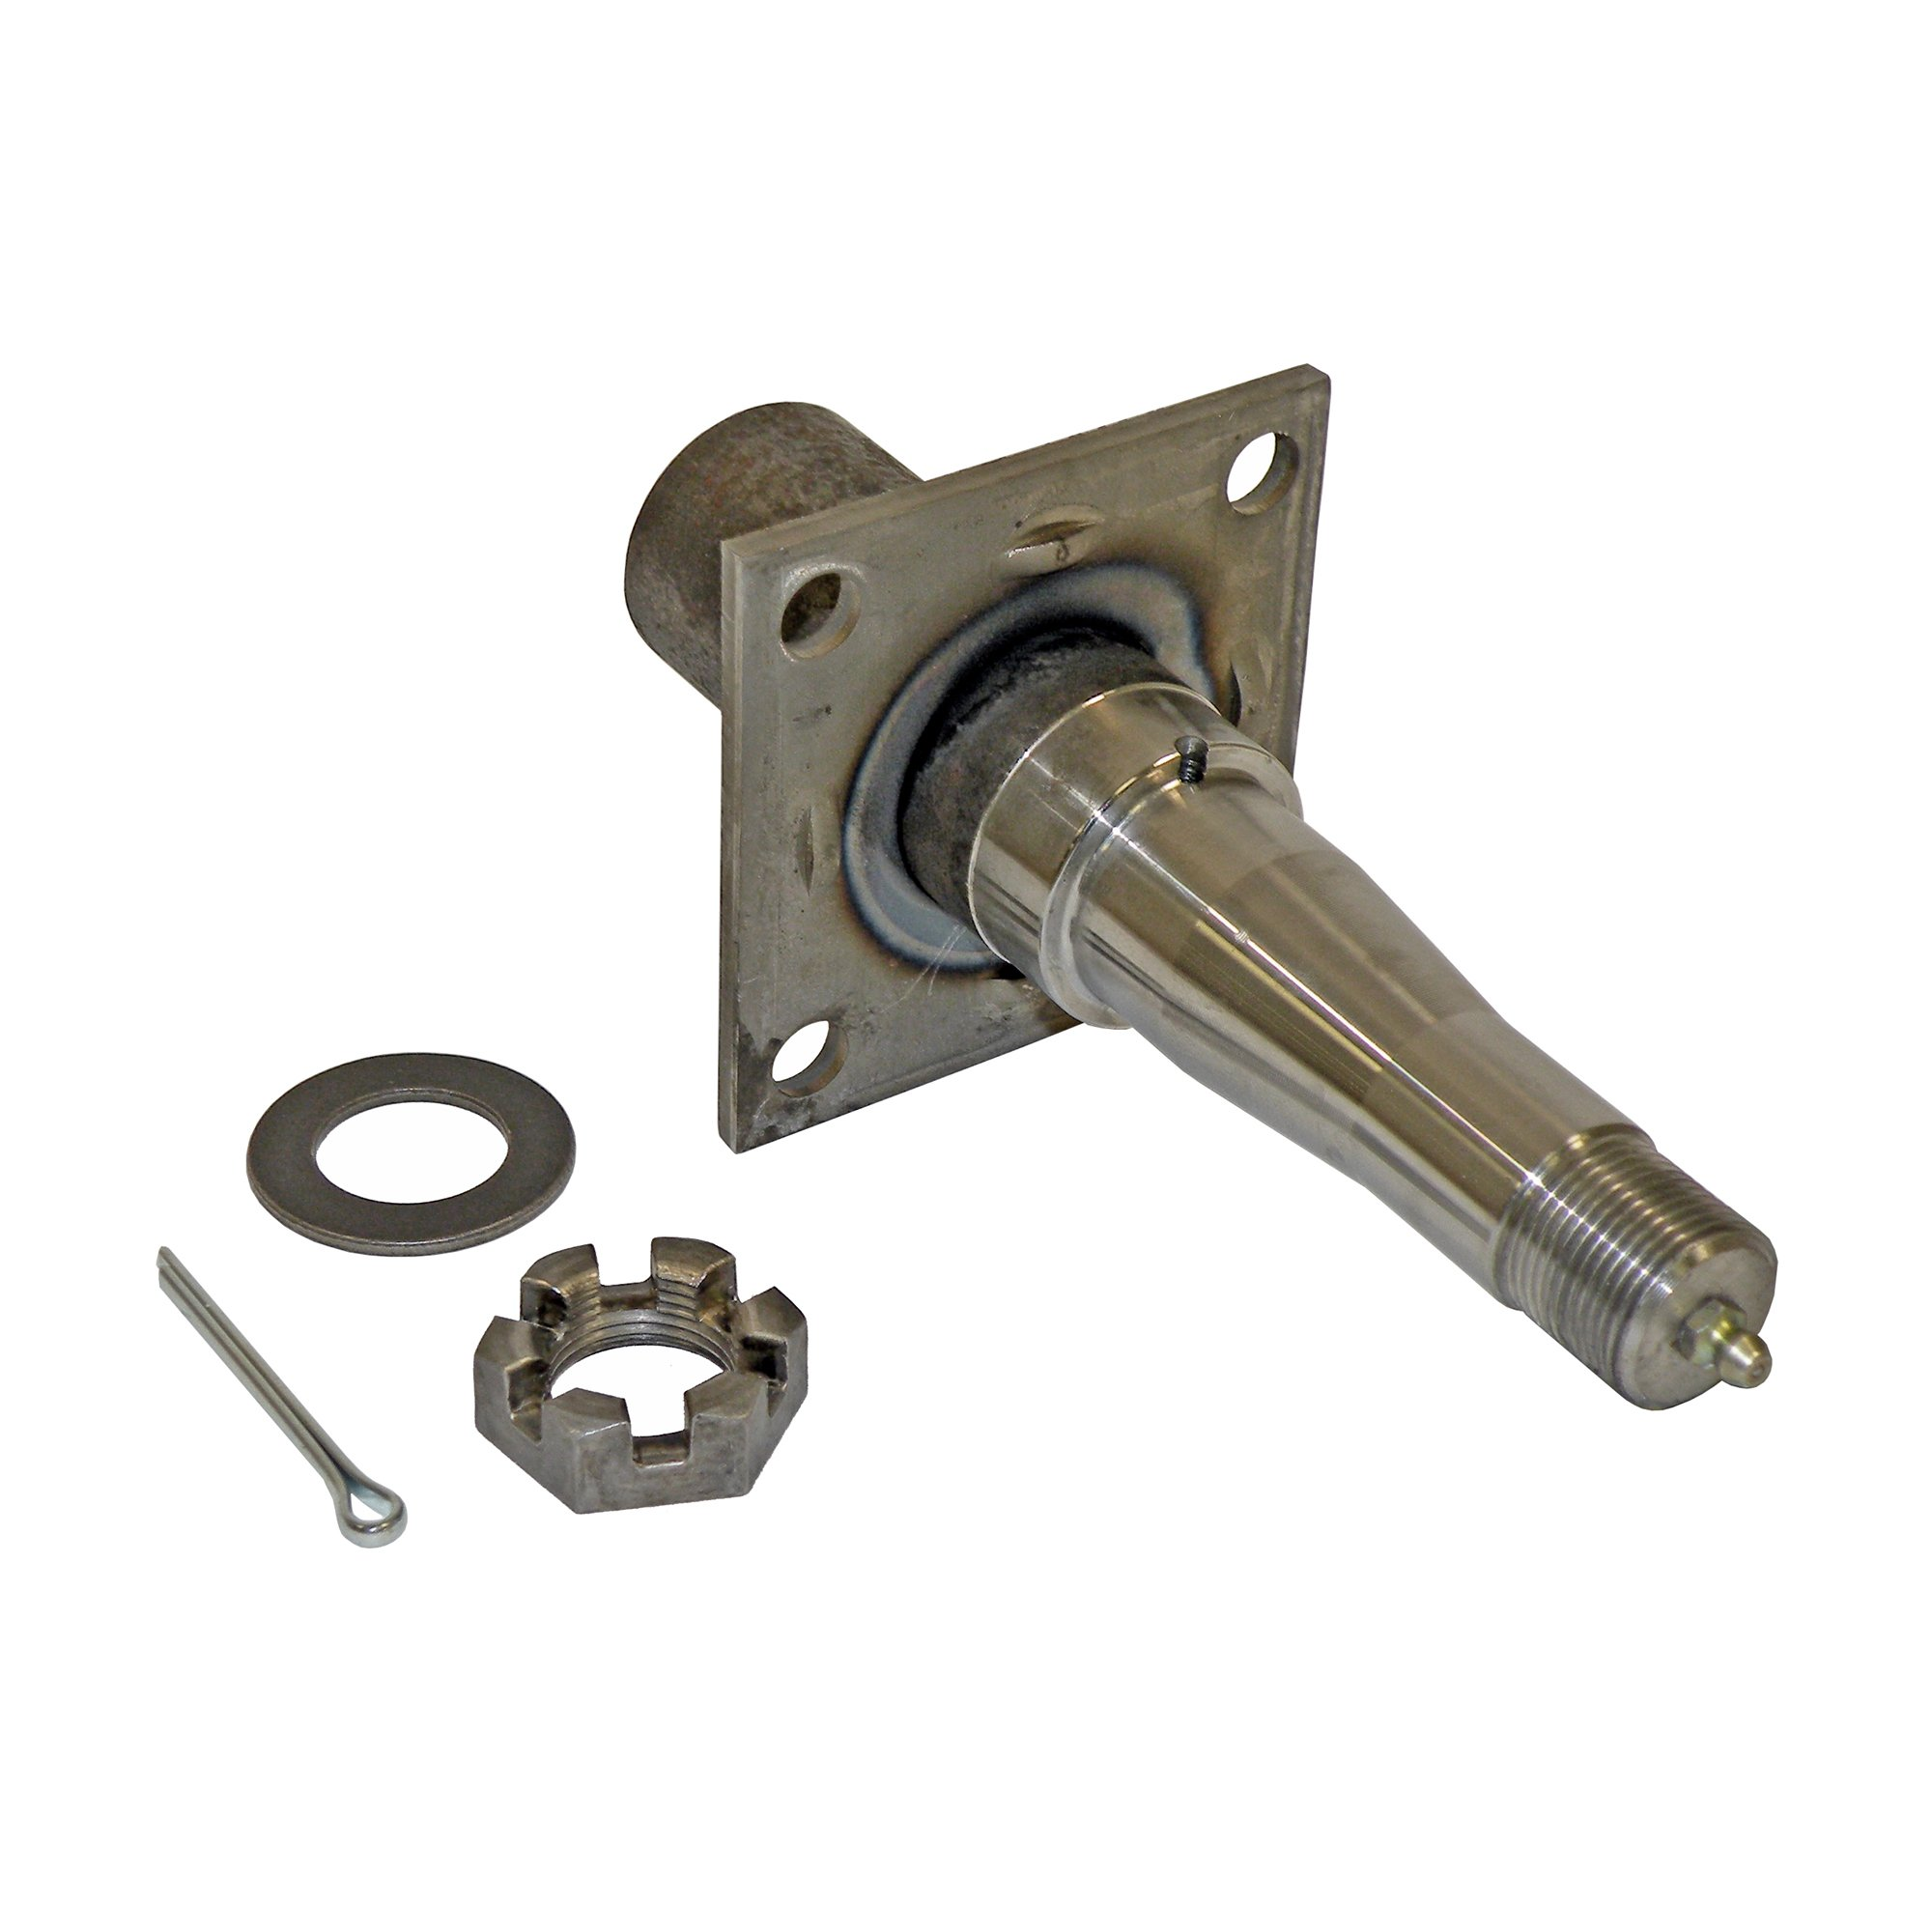 Round Stock - Trailer Axle Spindle With 4-Hole Flange - 1-3/8 Inch to 1-1/16 Inch I.D Bearings by Rigid Hitch